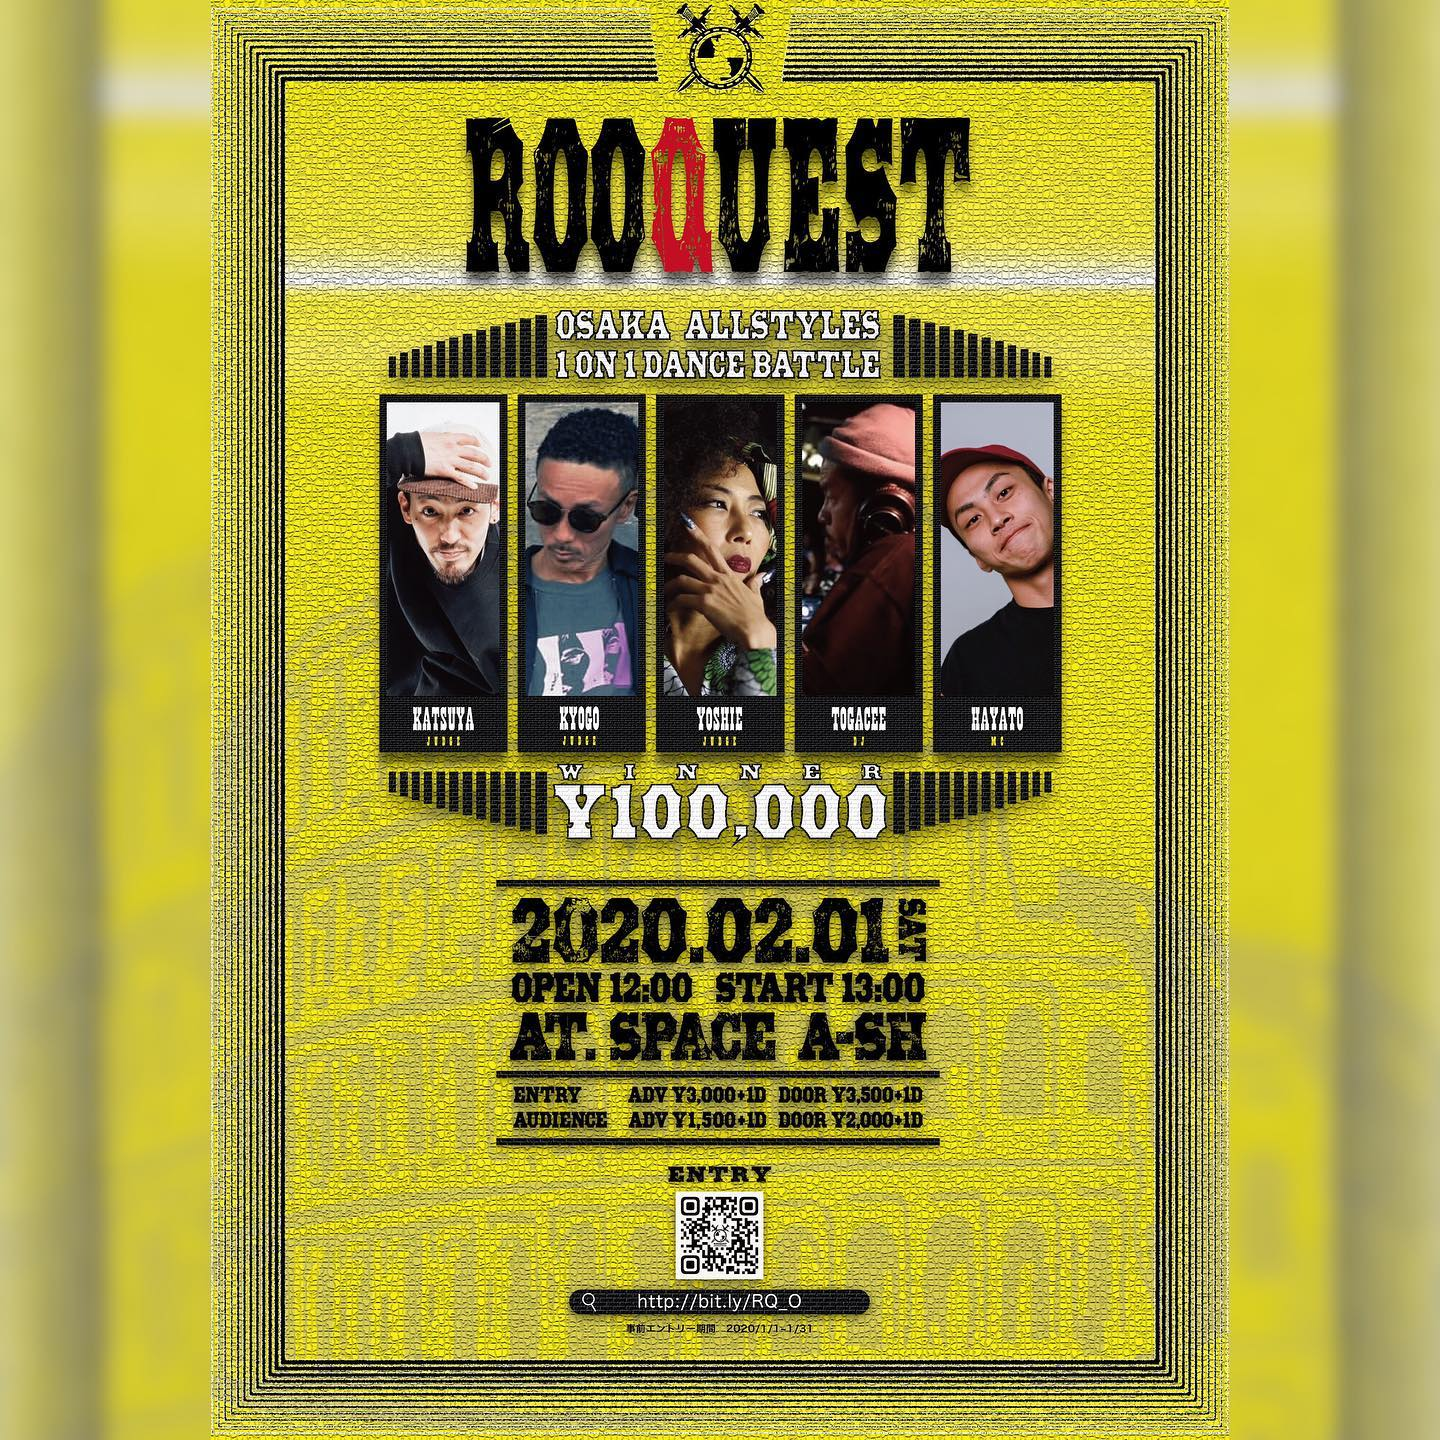 RooQuest OSAKA 2020 1on1 ALLSTYLES BATTLE